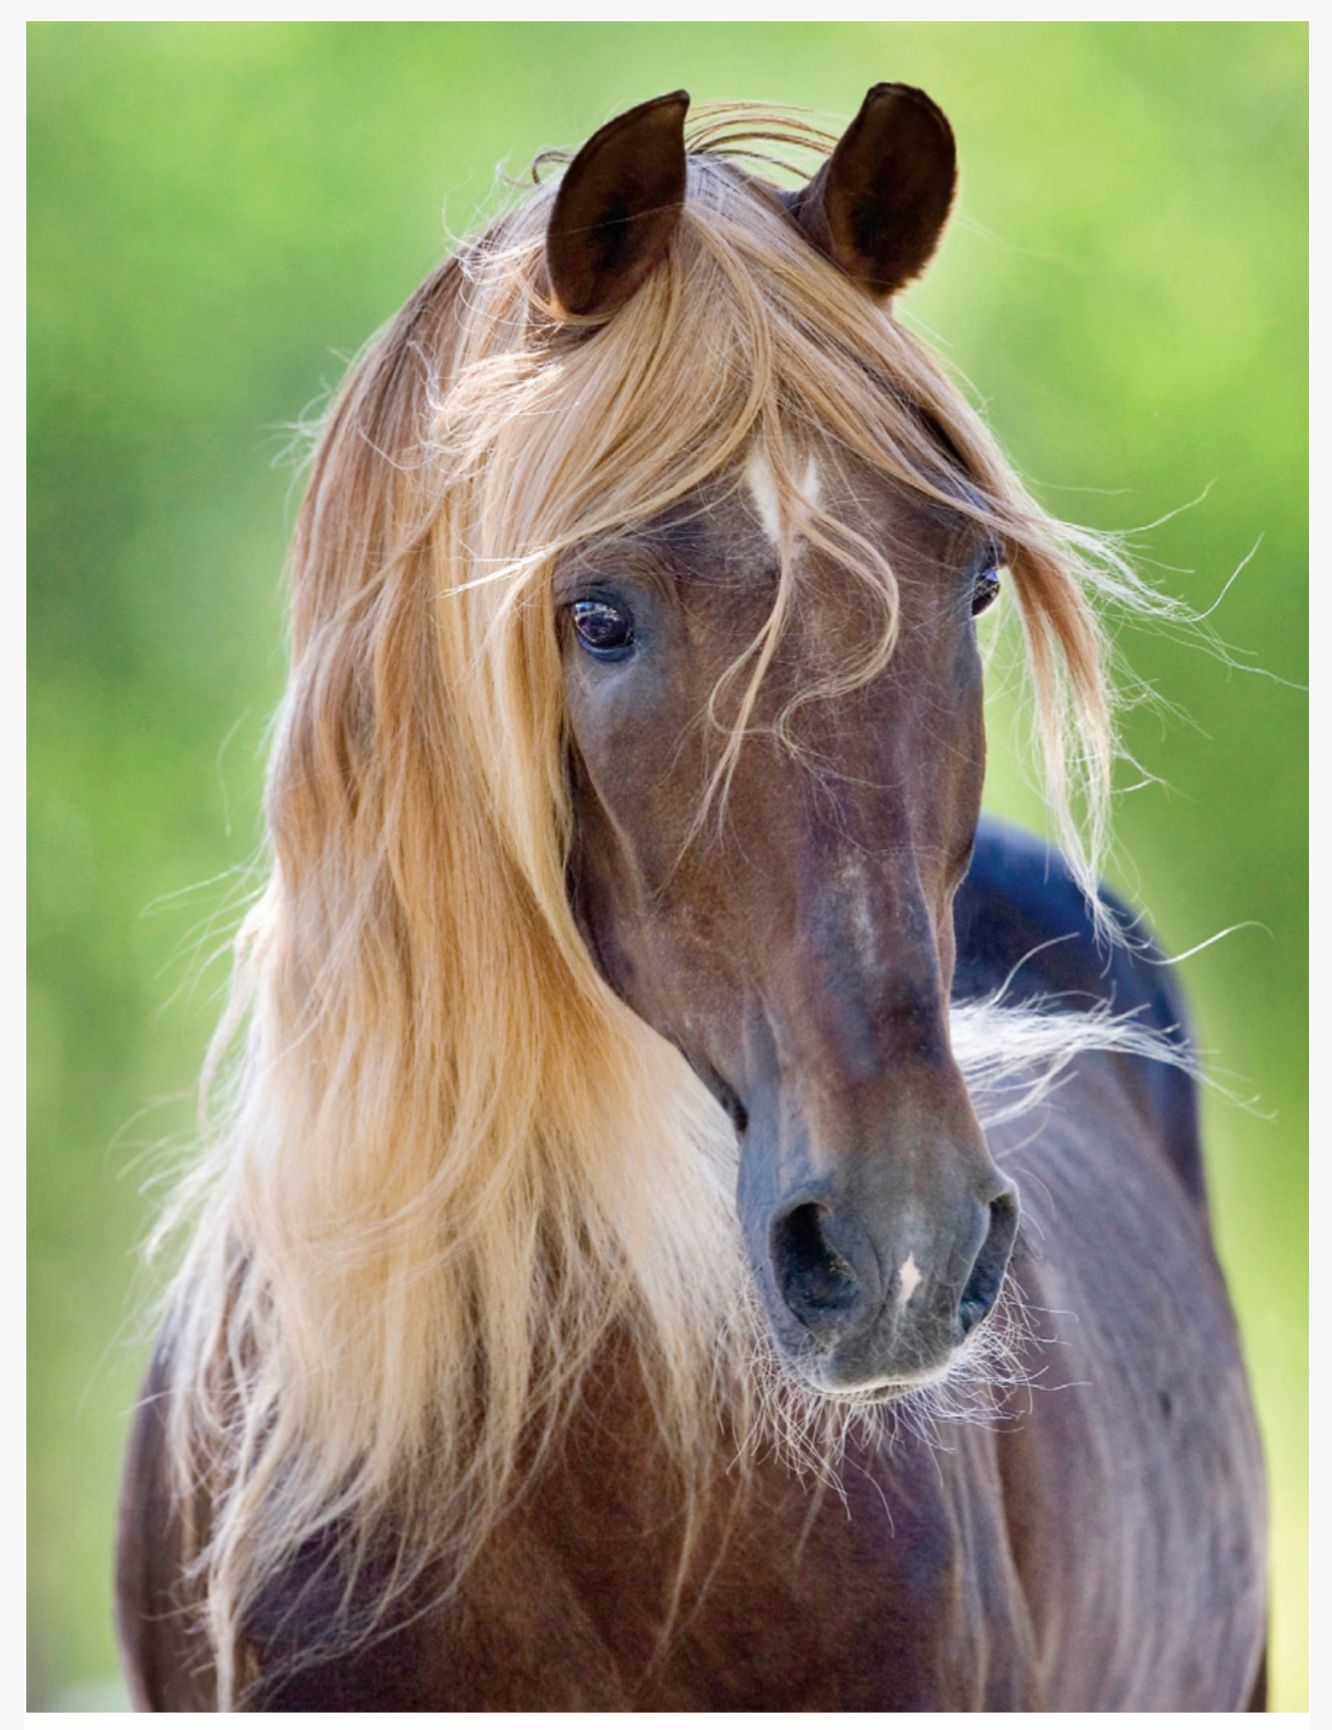 Beautiful horse! Striking color—maybe liver chestnut with ... - photo#48